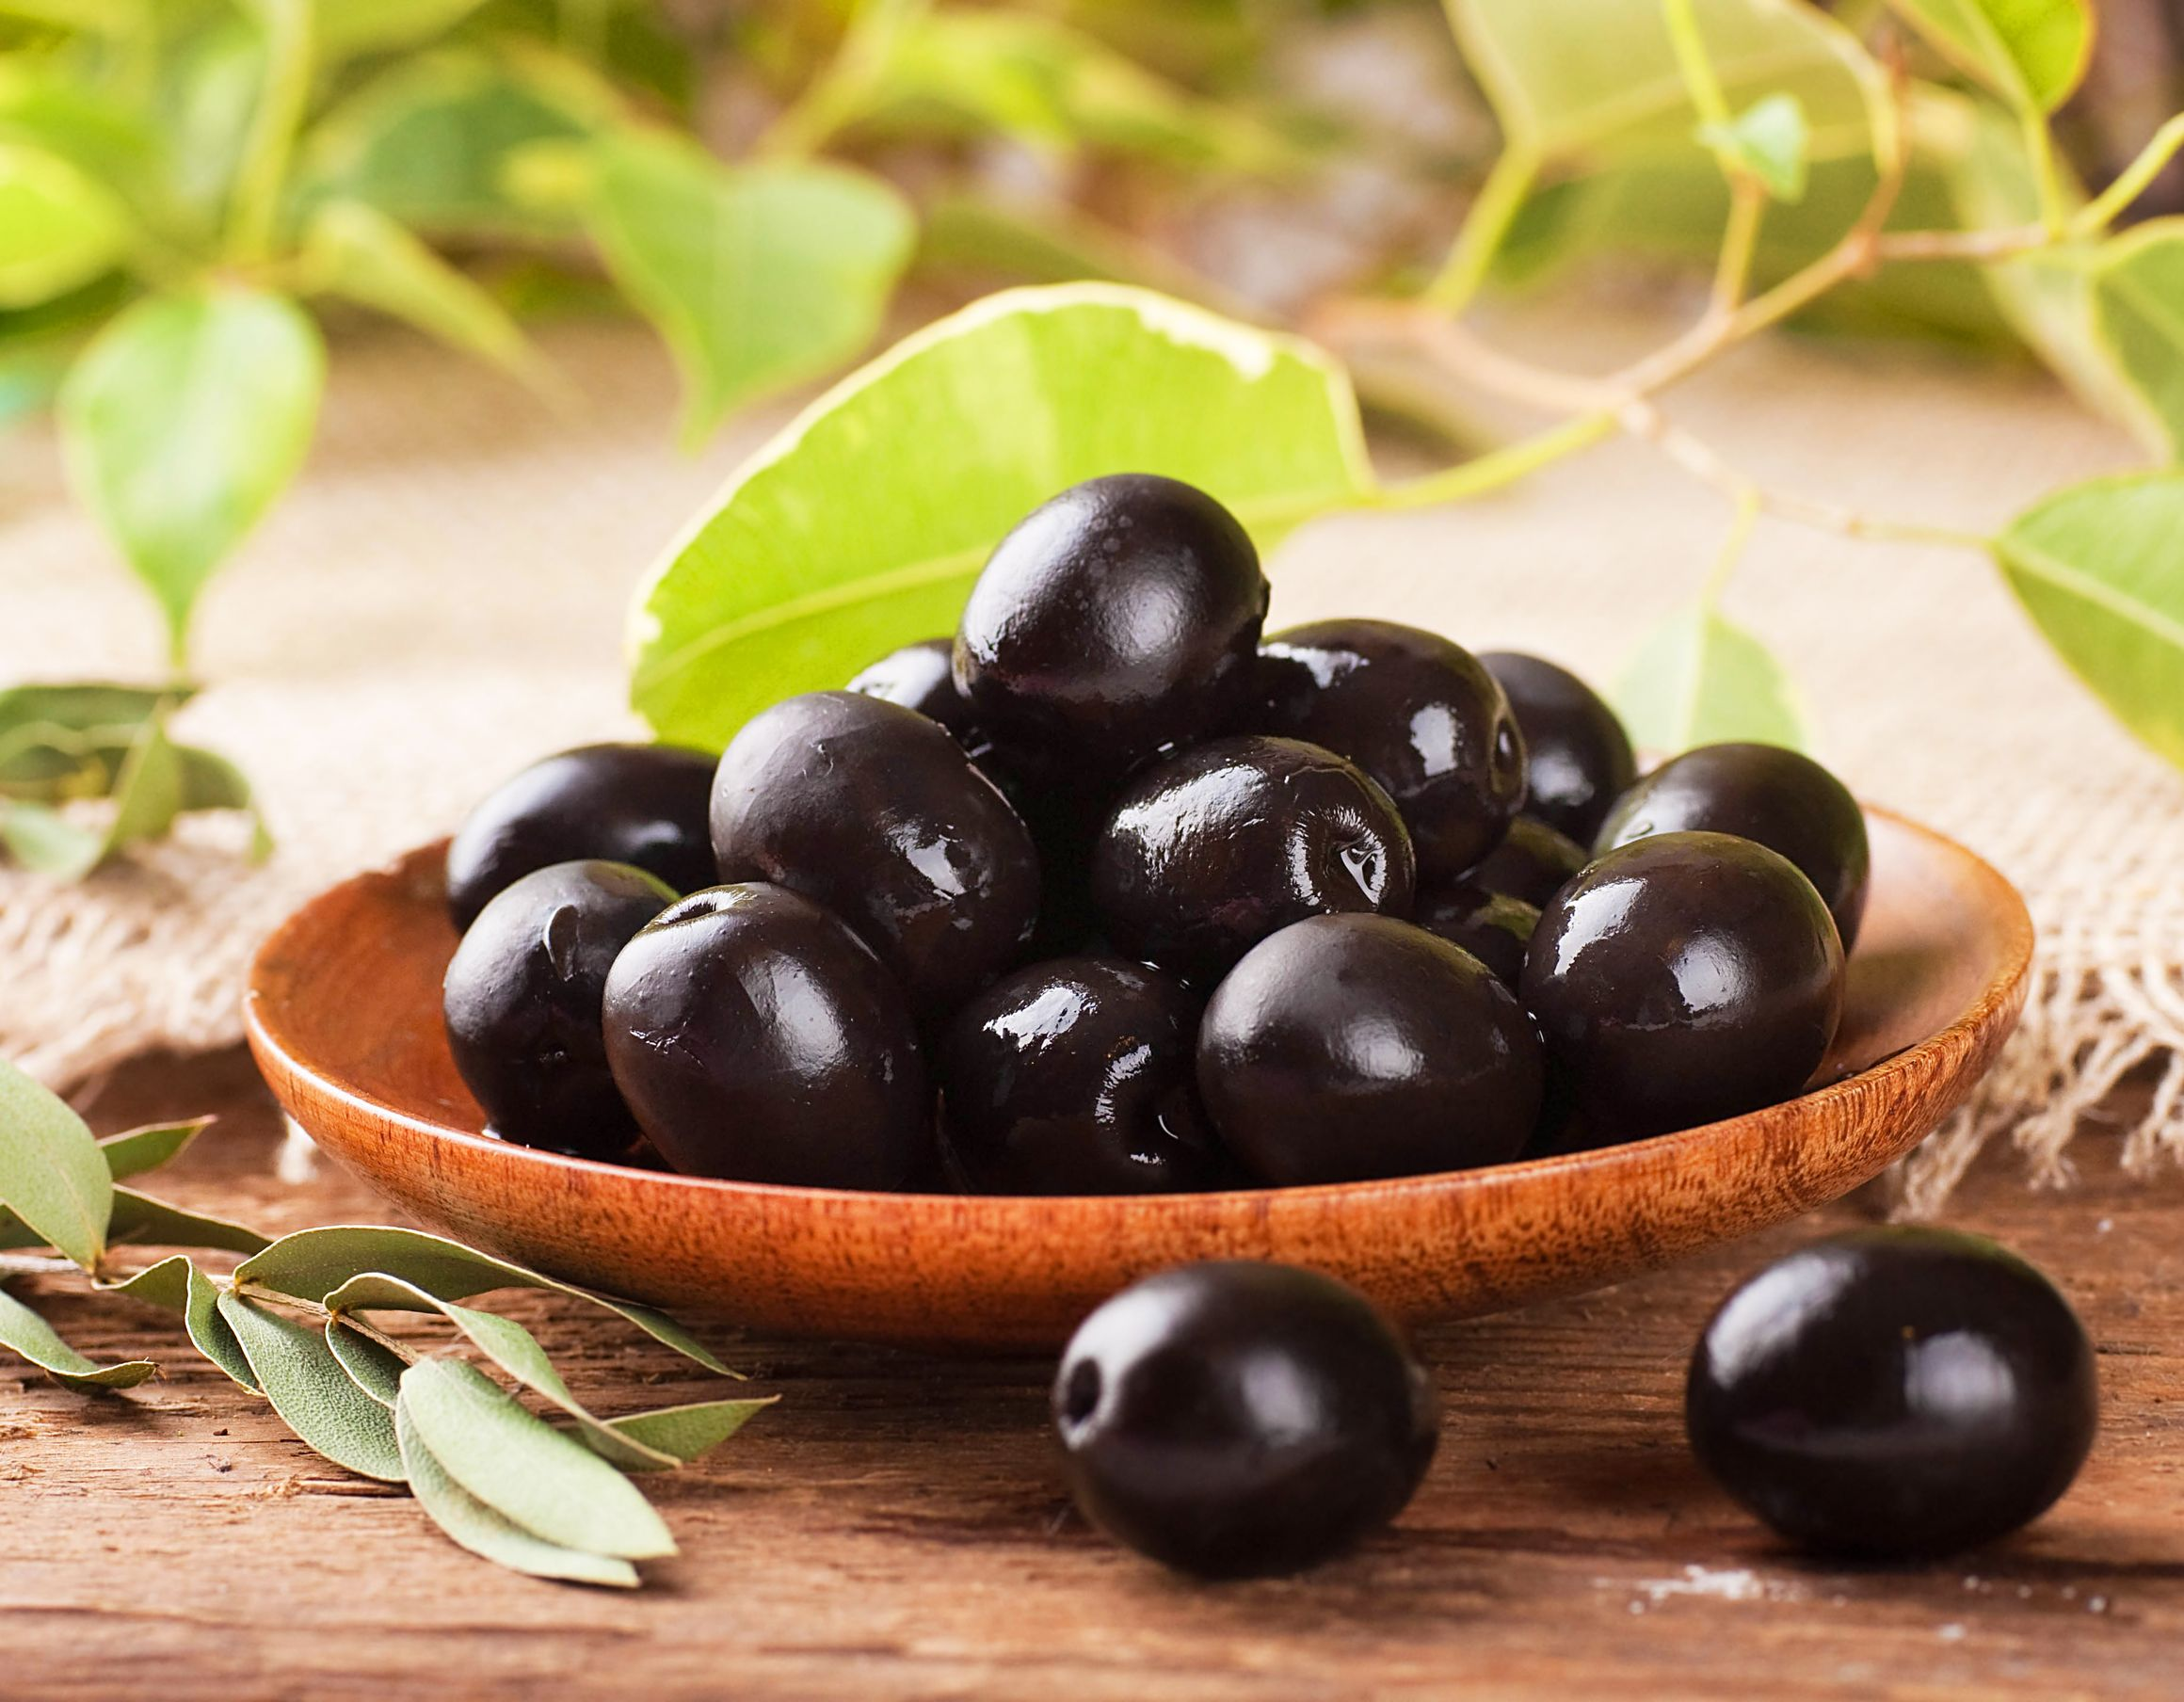 Battling Cholesterol? Add Black Olives to your Diet